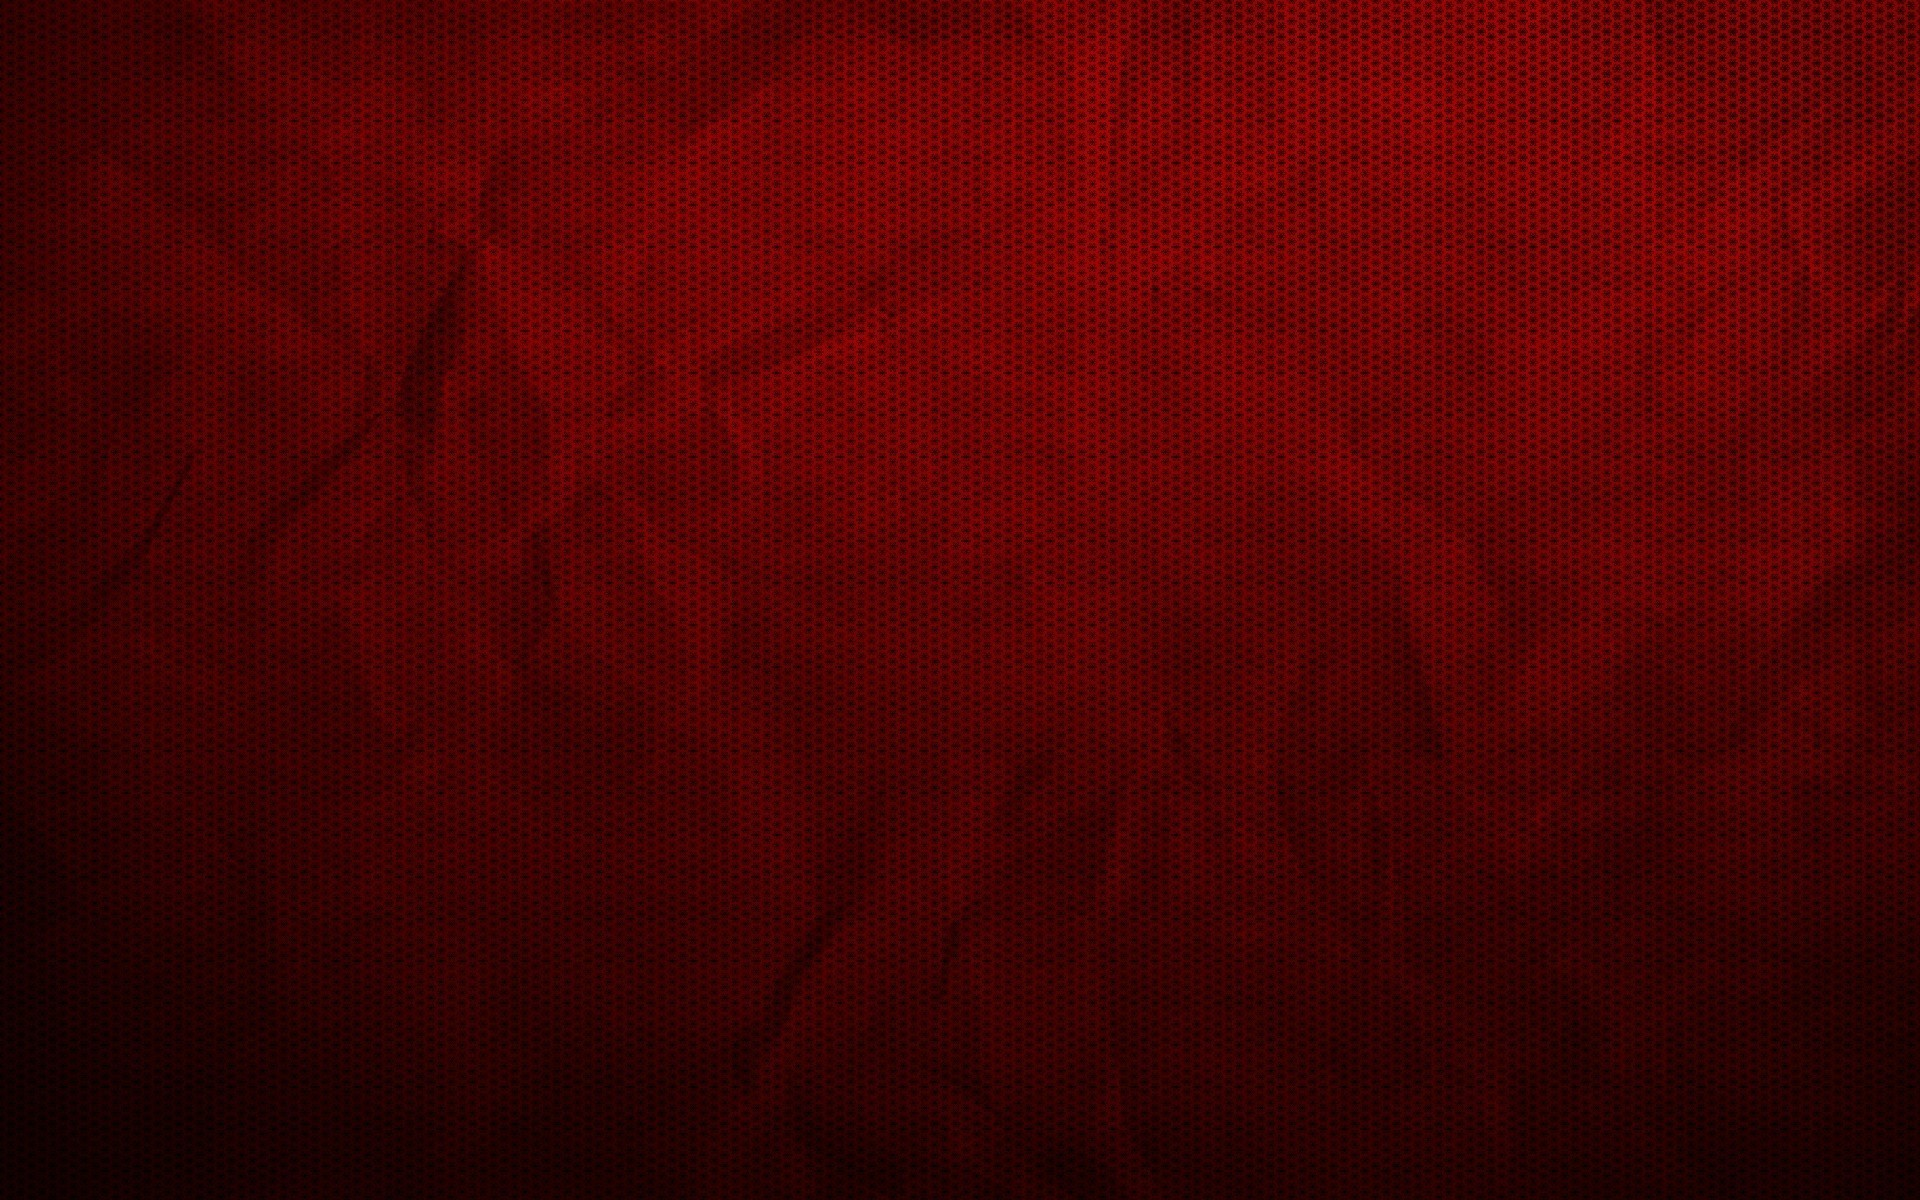 Marun-dark-red-color-plain-background-hd-wallpapers-gallery